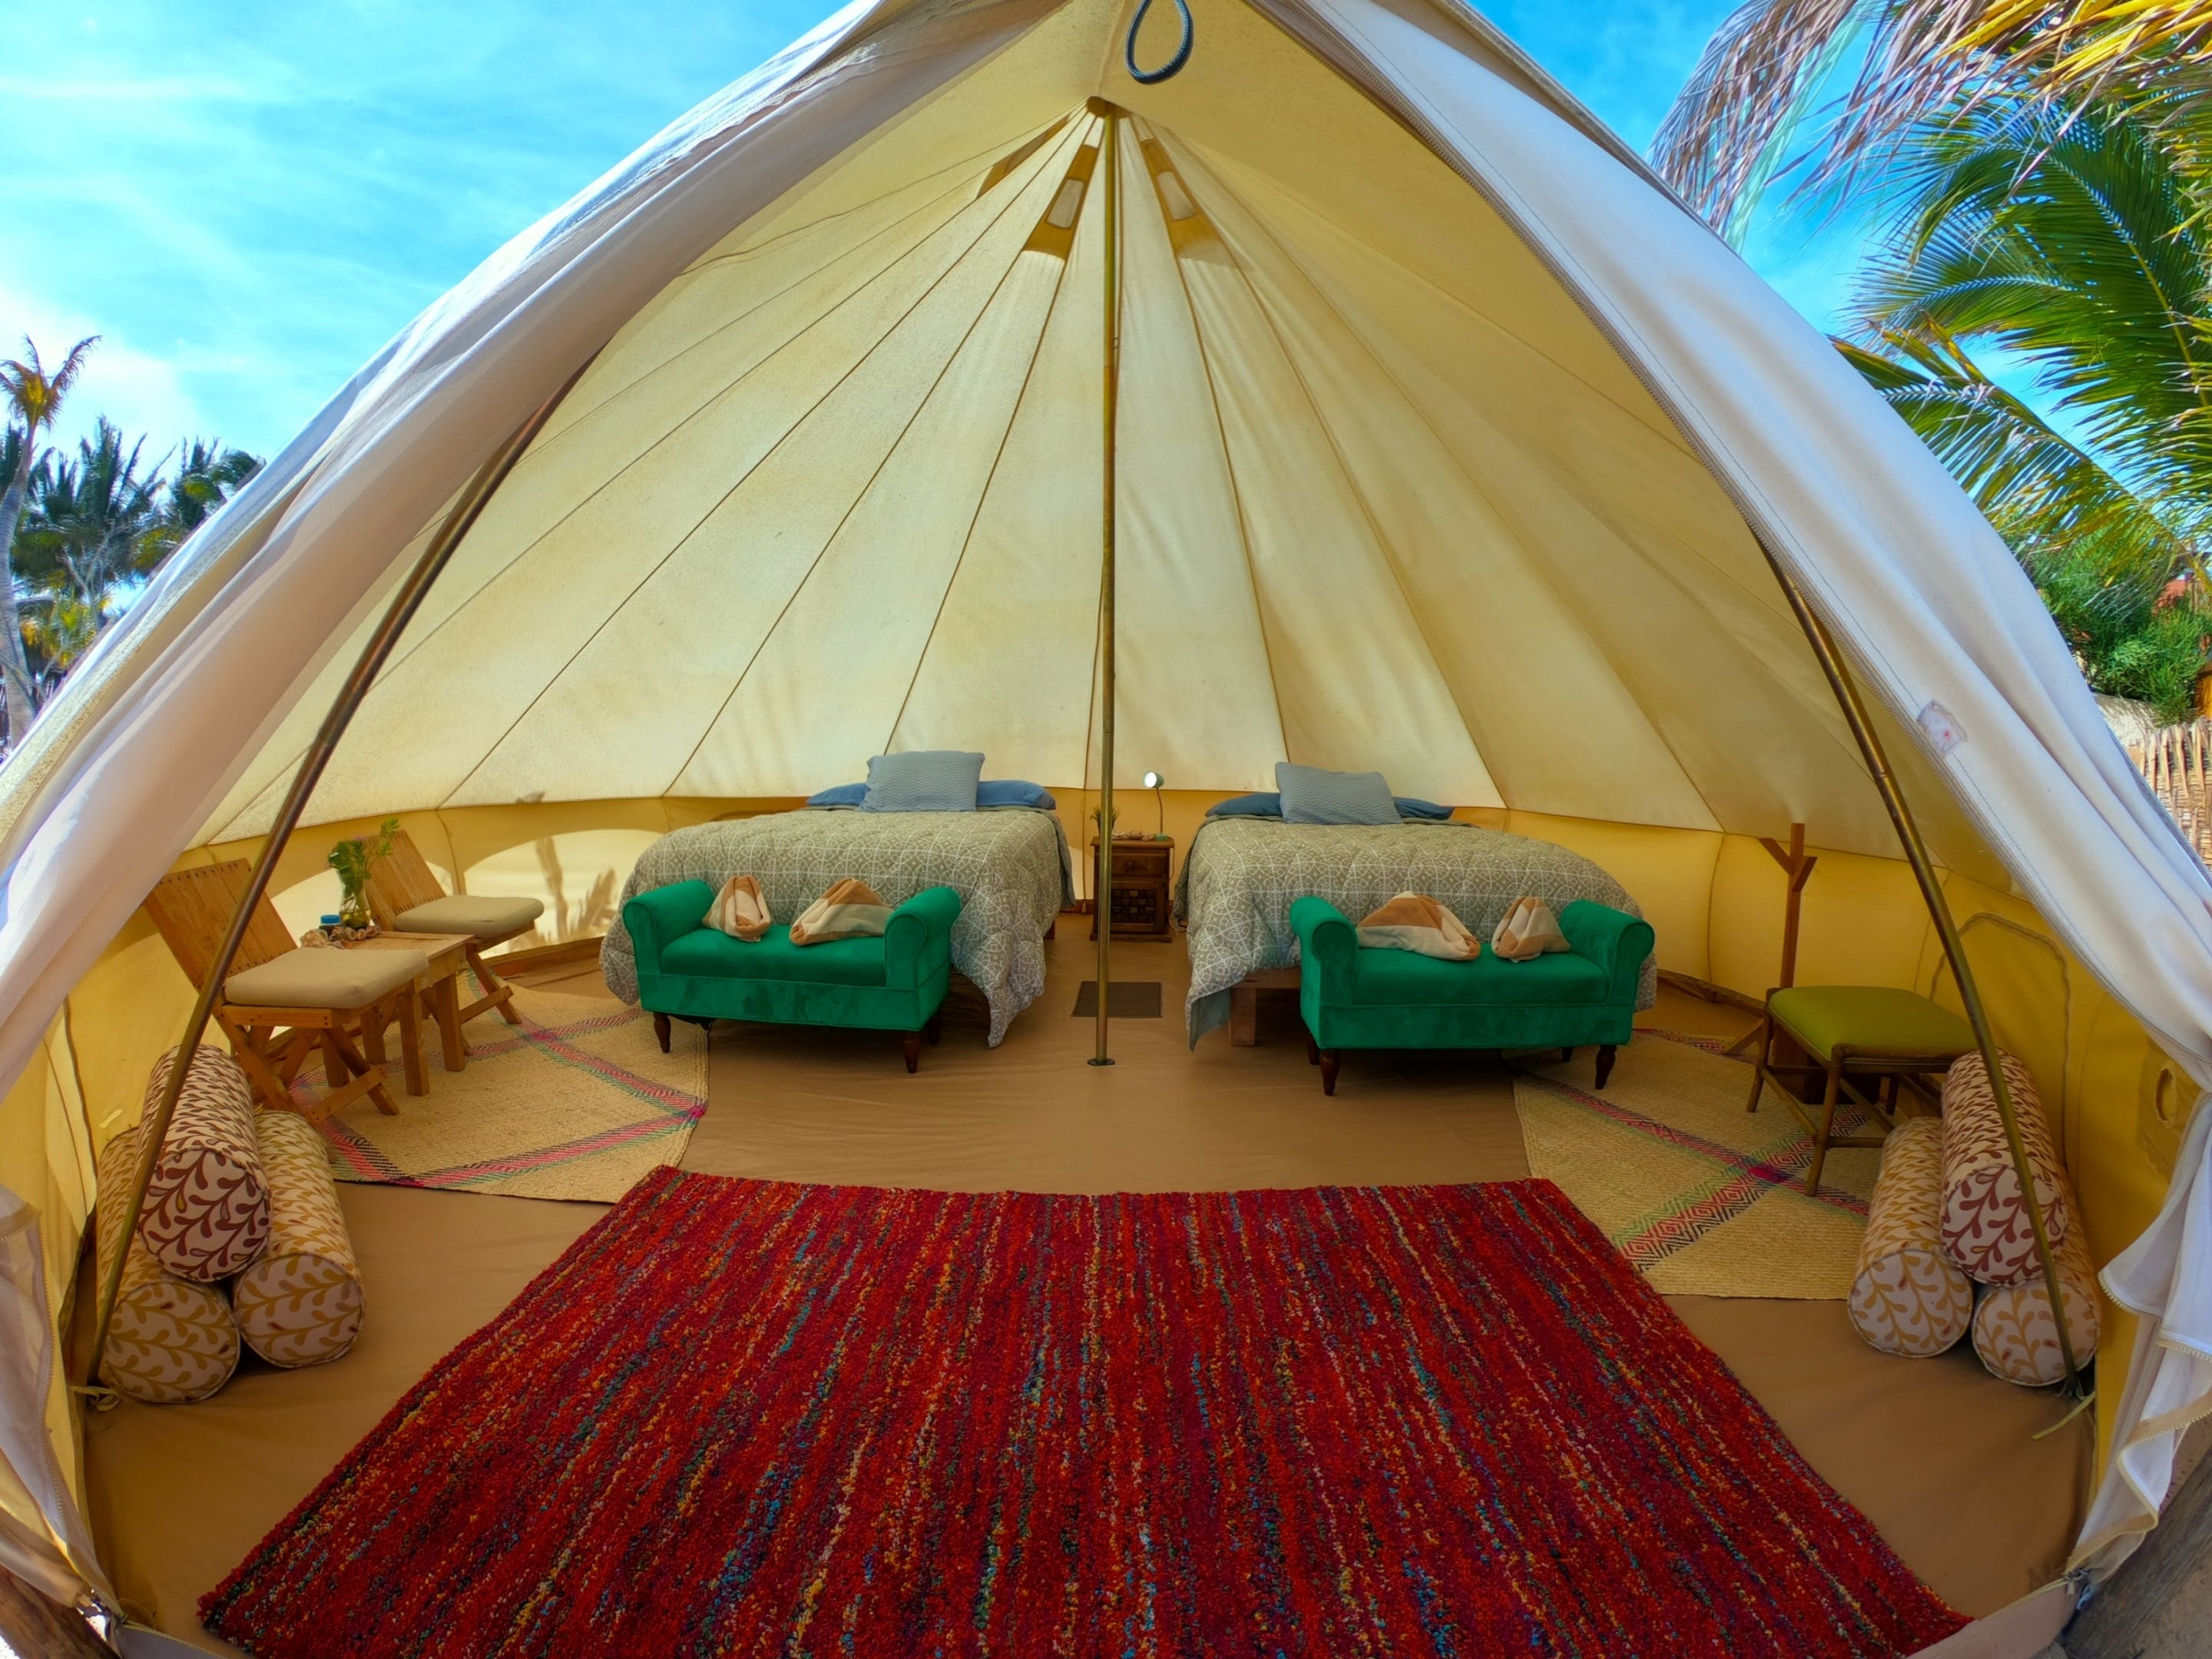 4 people room in Glamping Baja in La Ventana in a south beach.